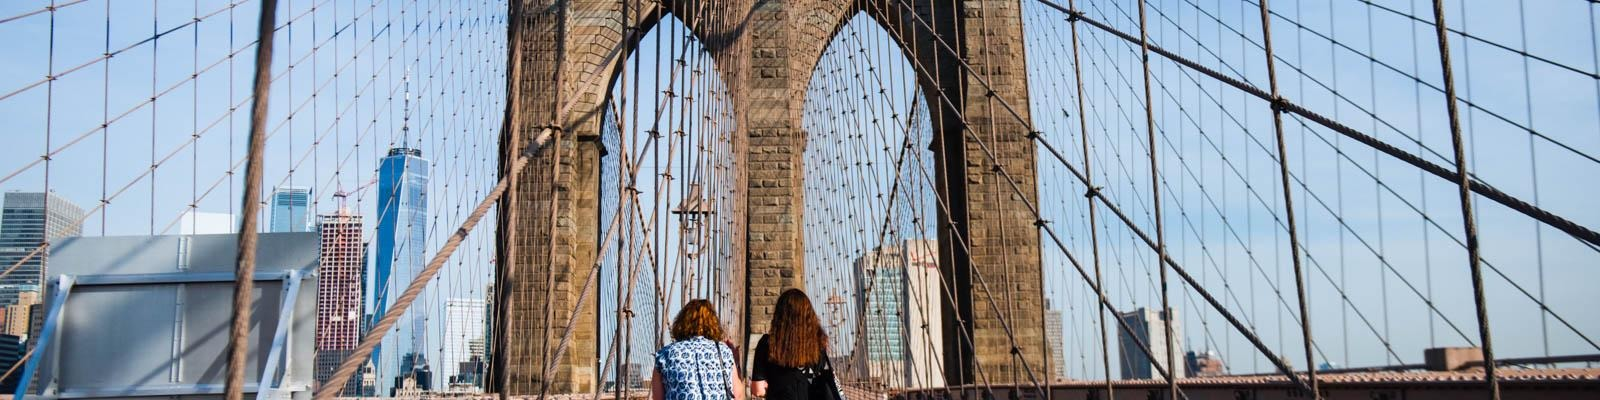 Make the most of your trip to the Brooklyn Bridge.